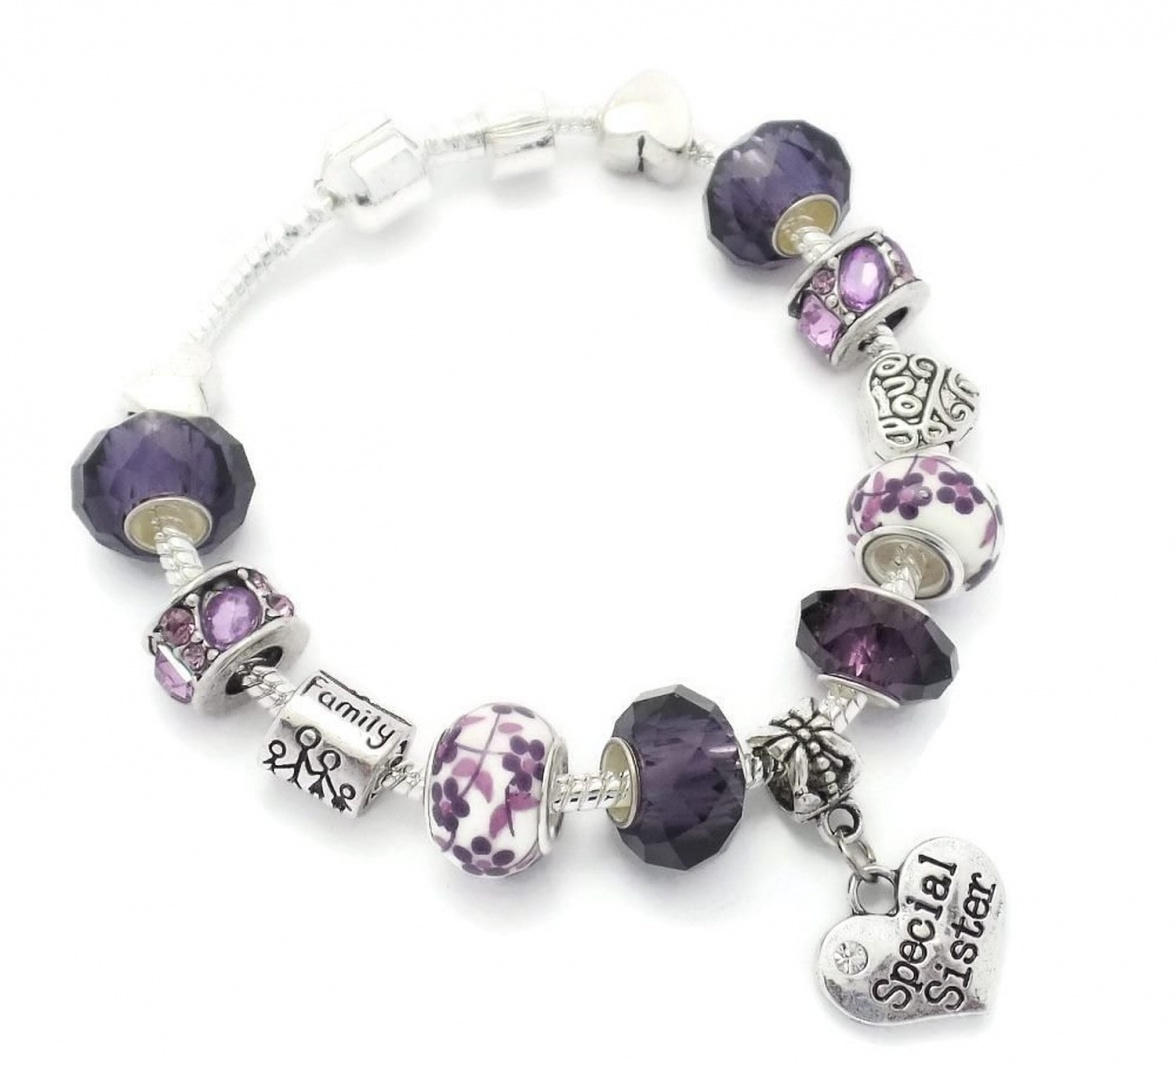 Truly Charming Purple Special SISTER Starter Charm Bracelet Pandora Style Gift Boxed 20cm lz9bBa